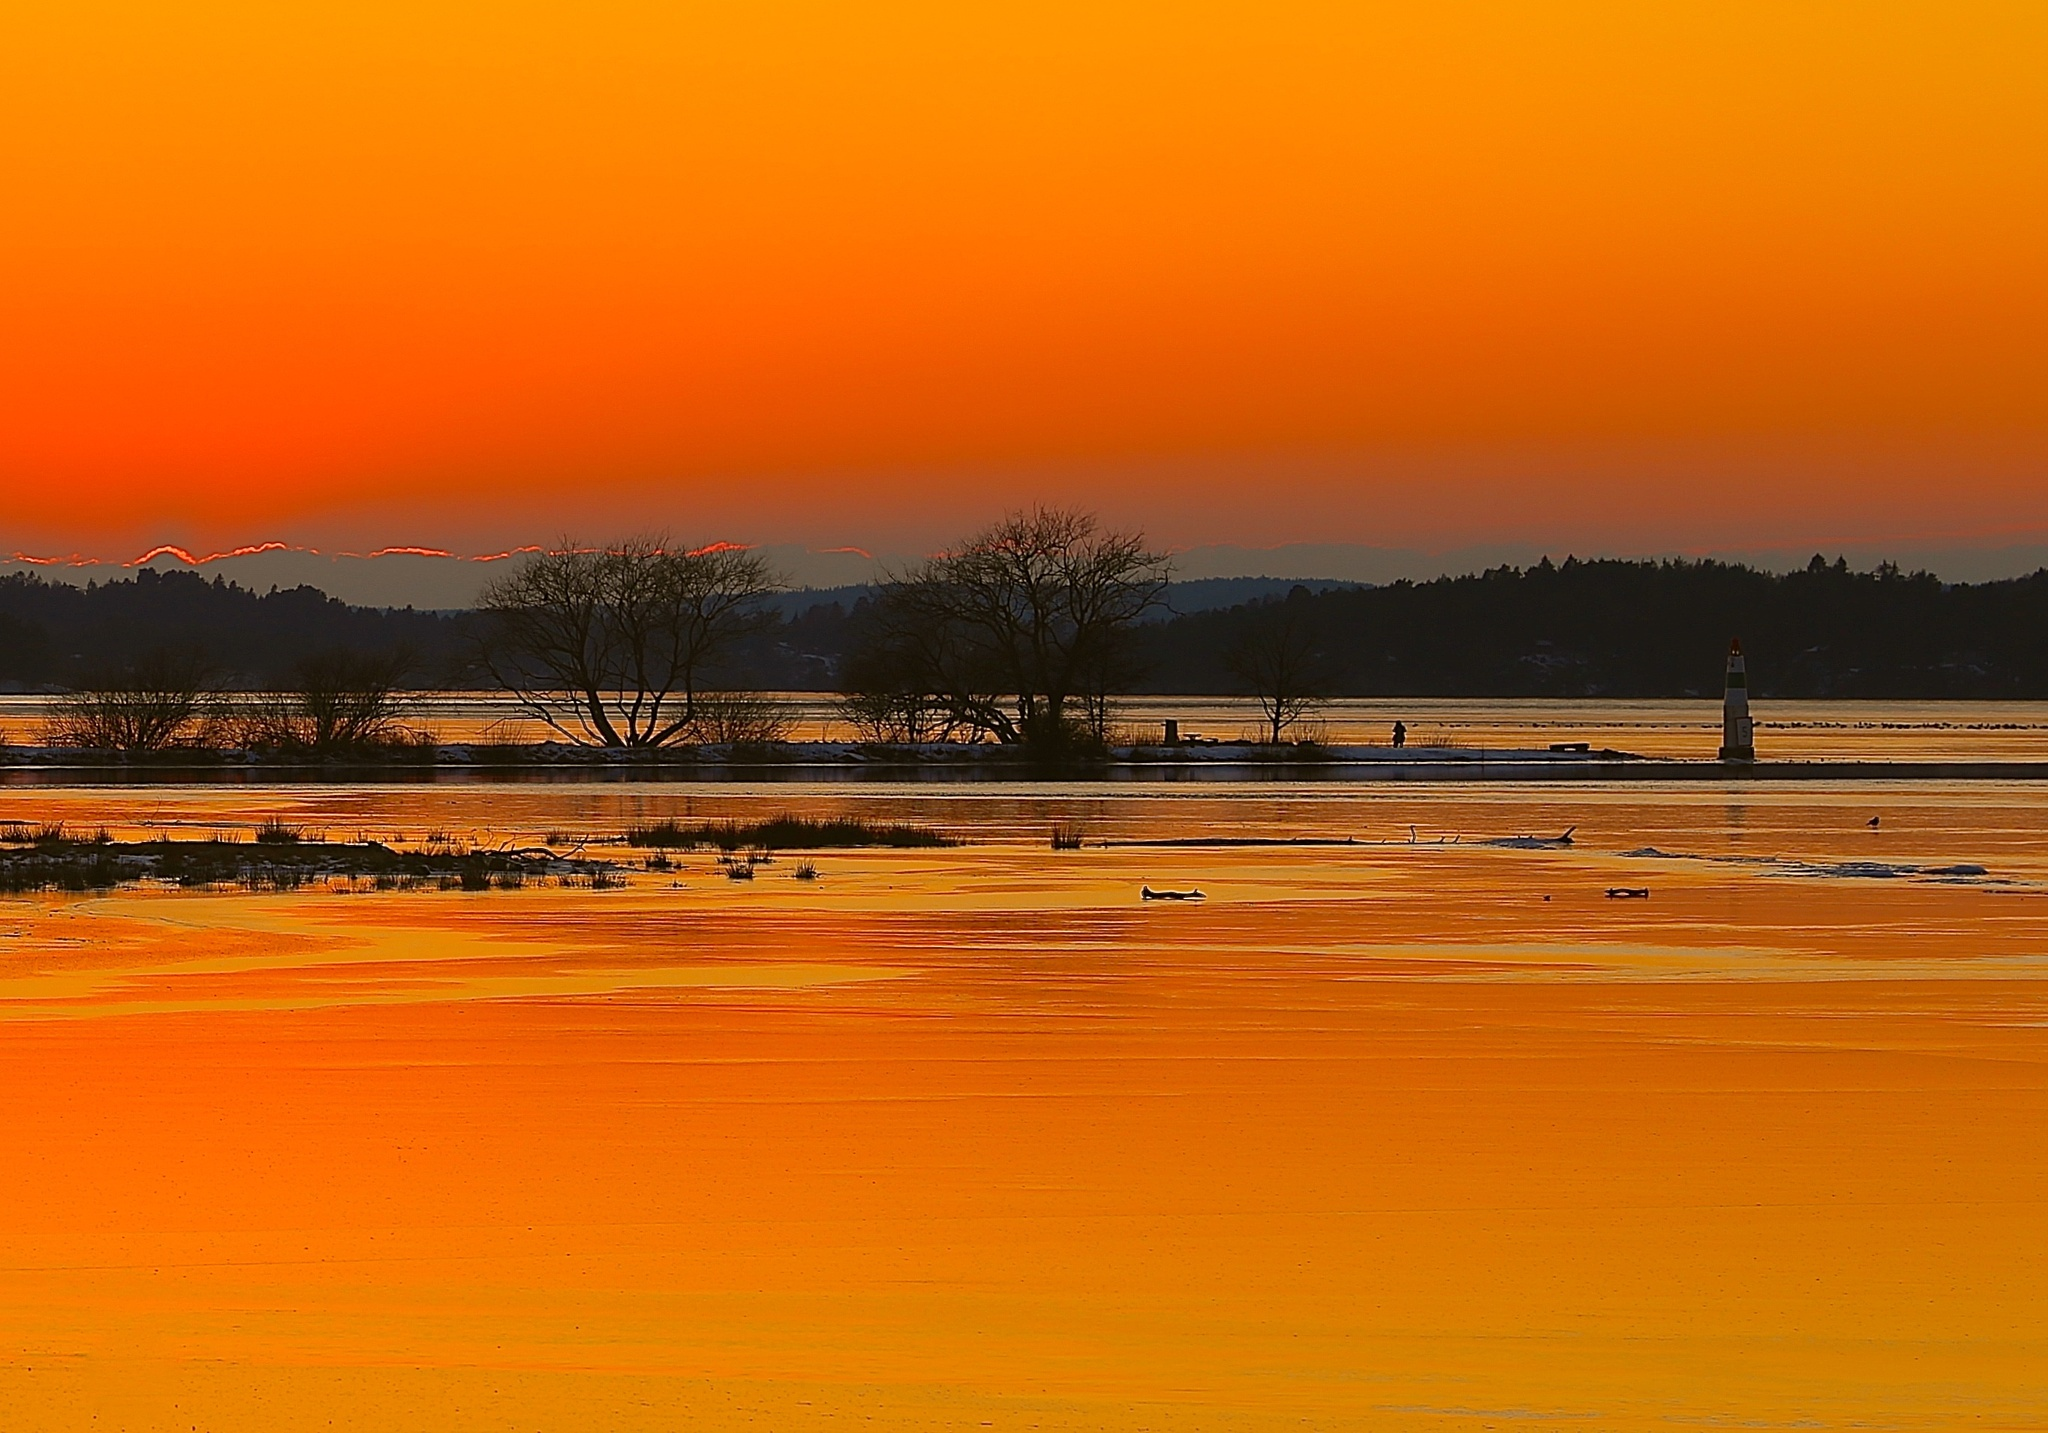 Sunset memory by Bildmartin